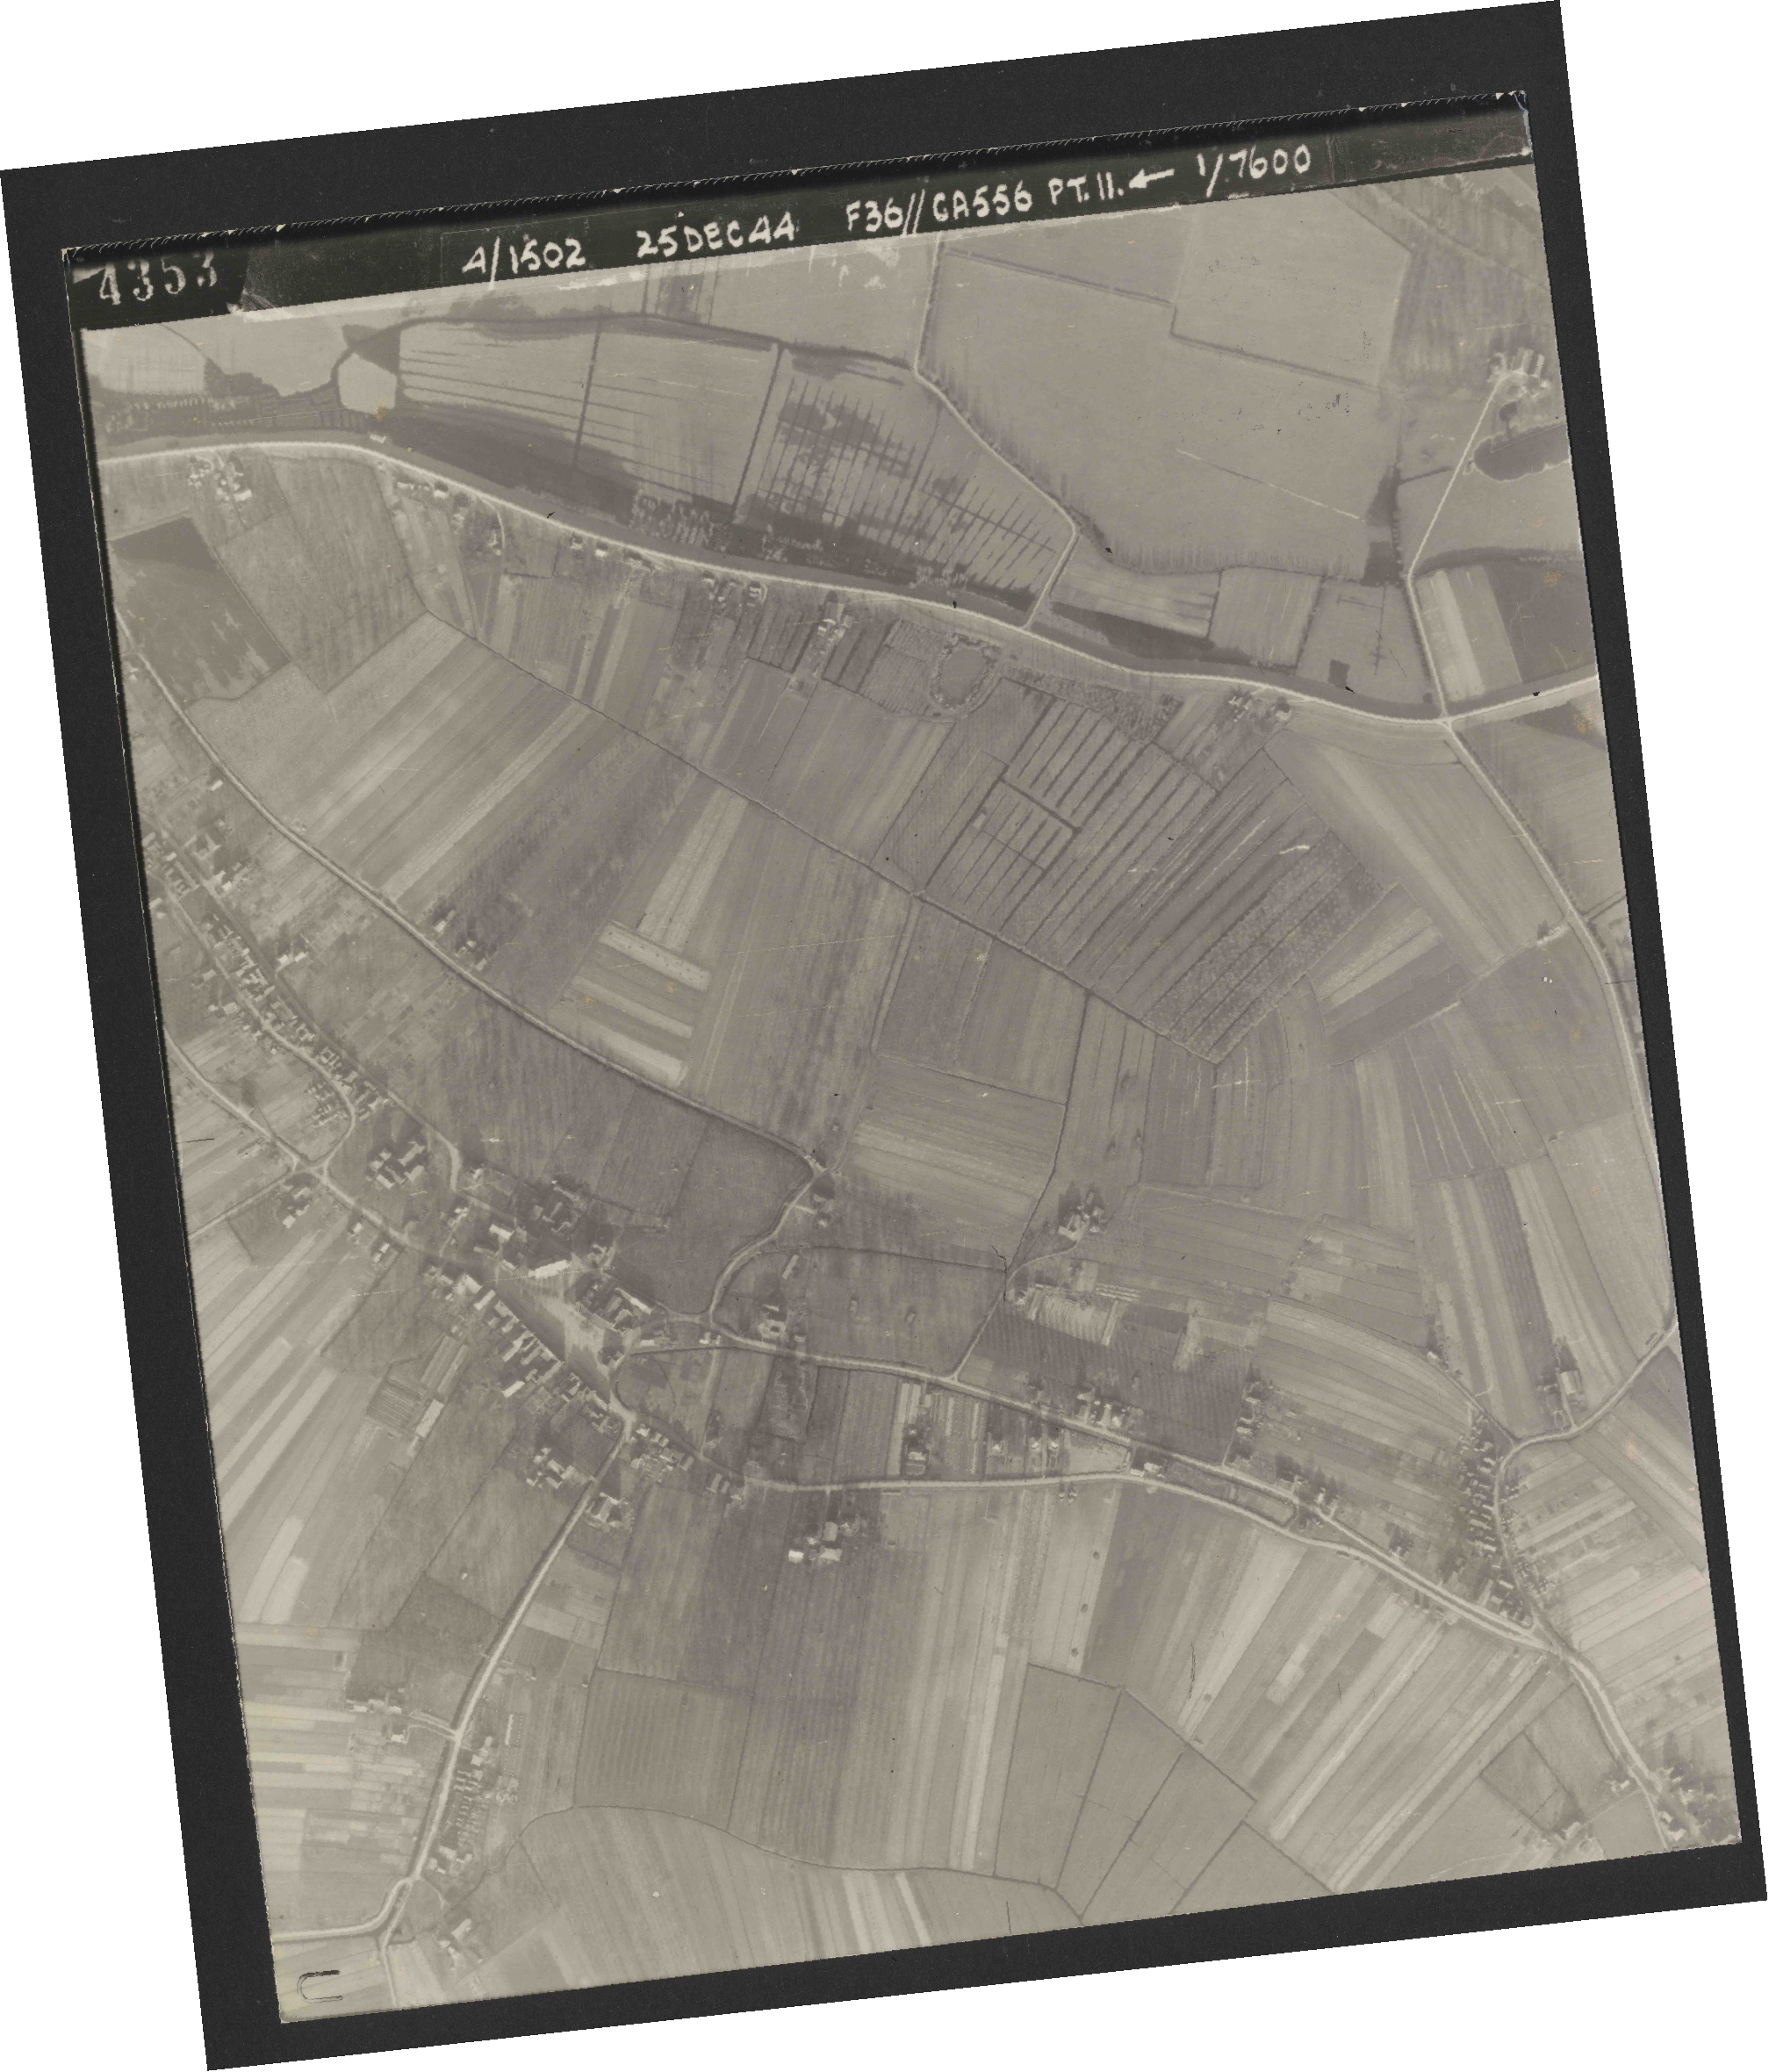 Collection RAF aerial photos 1940-1945 - flight 306, run 11, photo 4353